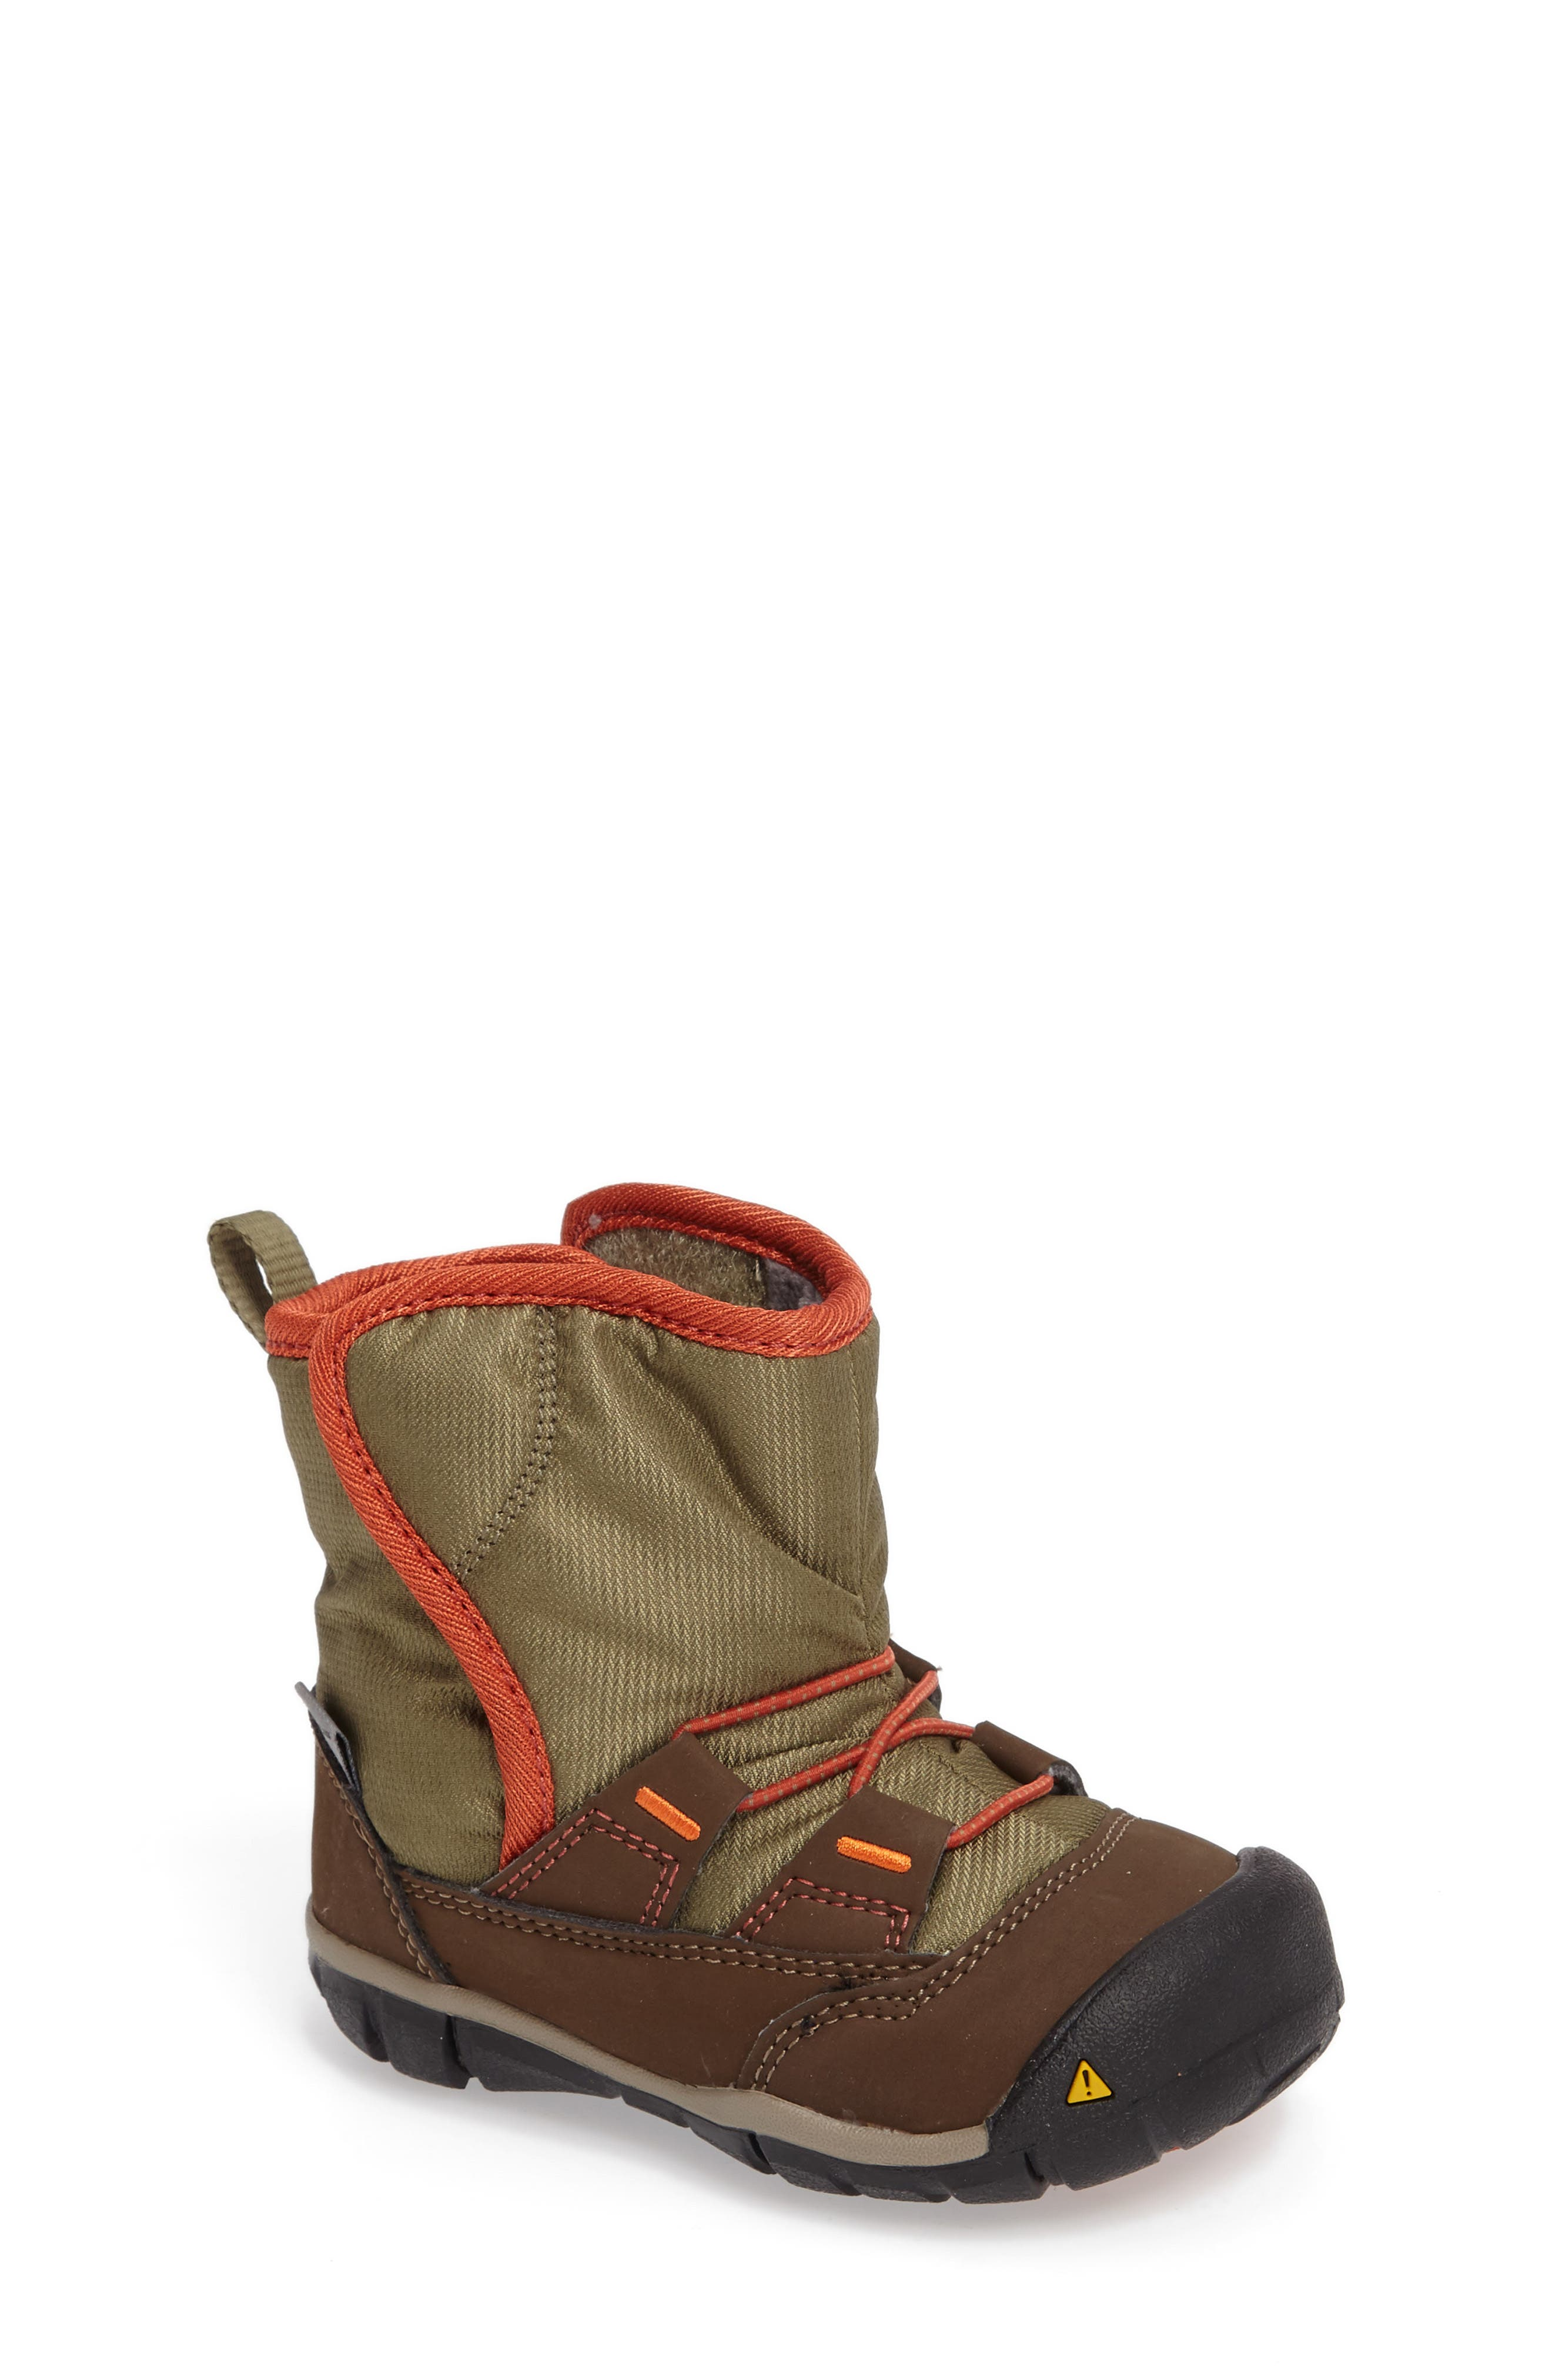 Peek-A-Boot Fleece Lined Boot,                         Main,                         color,